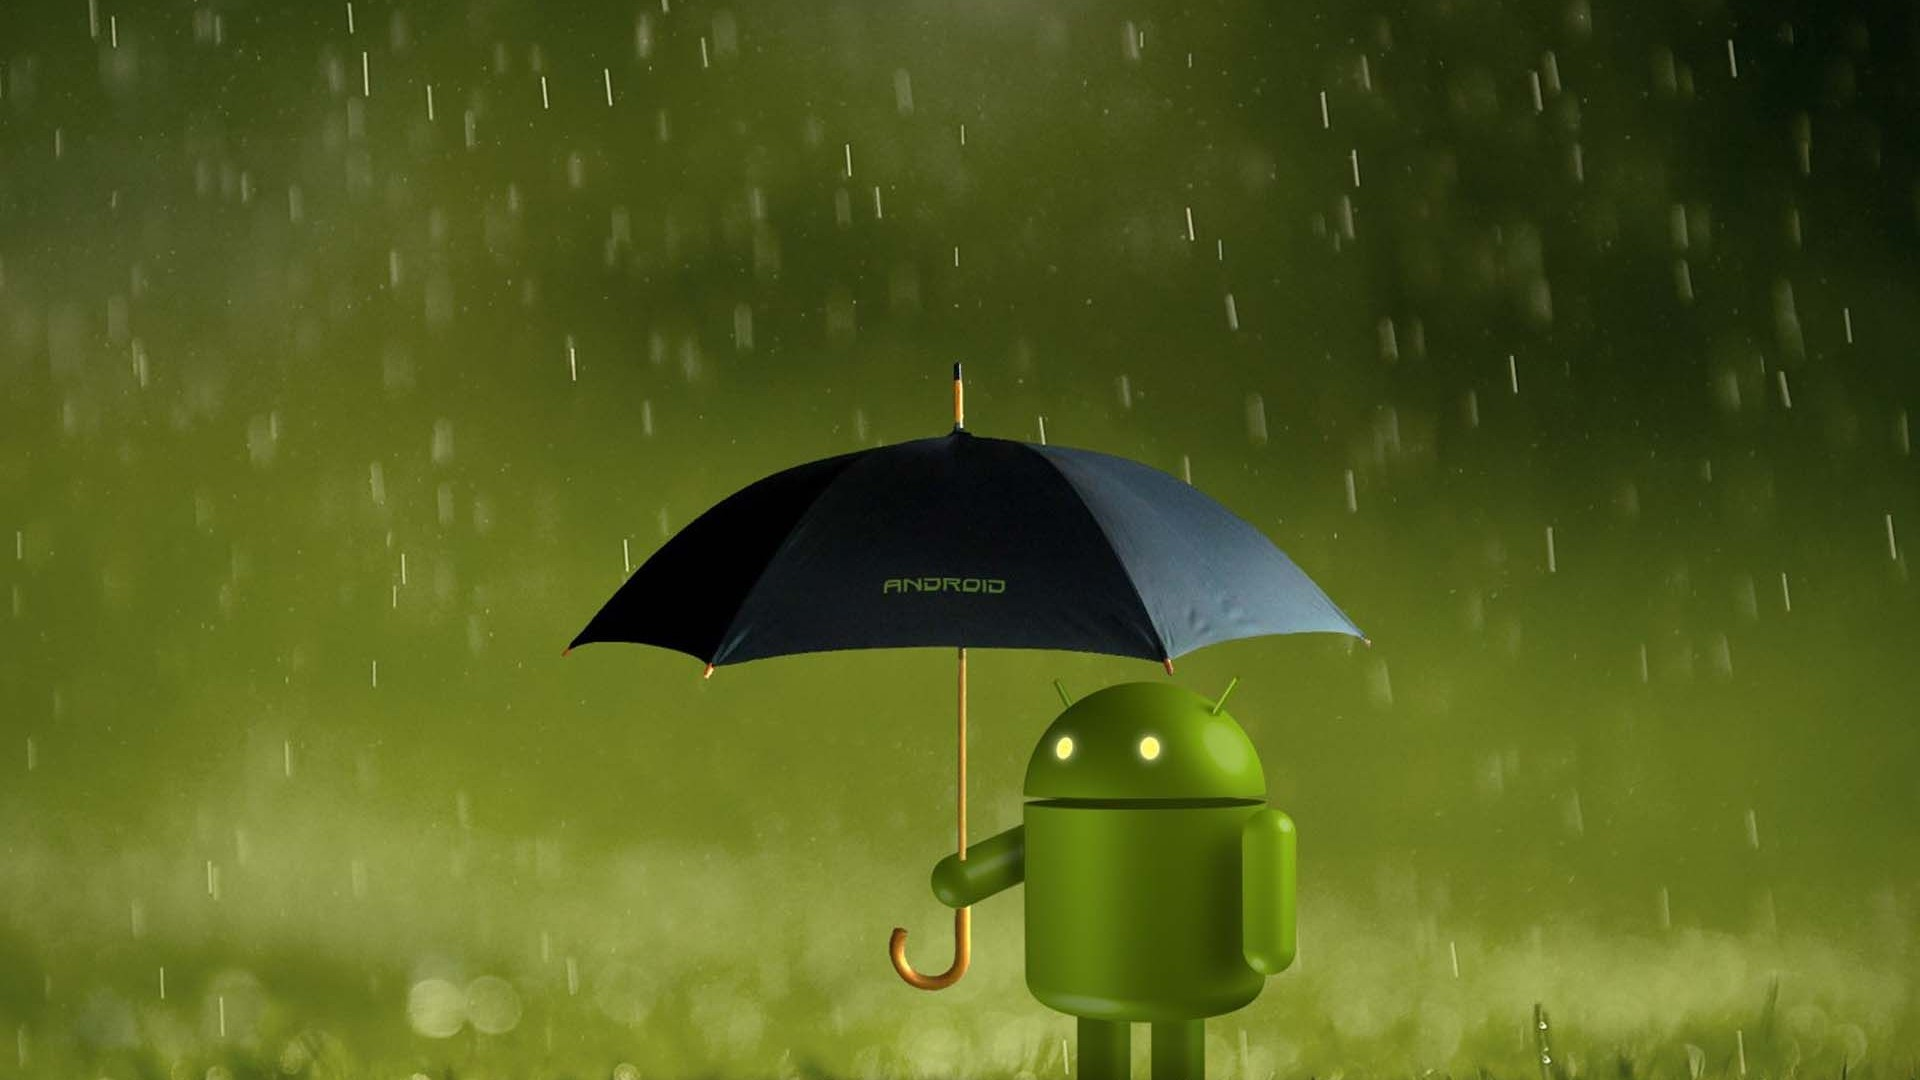 Rainy Android Wallpaper